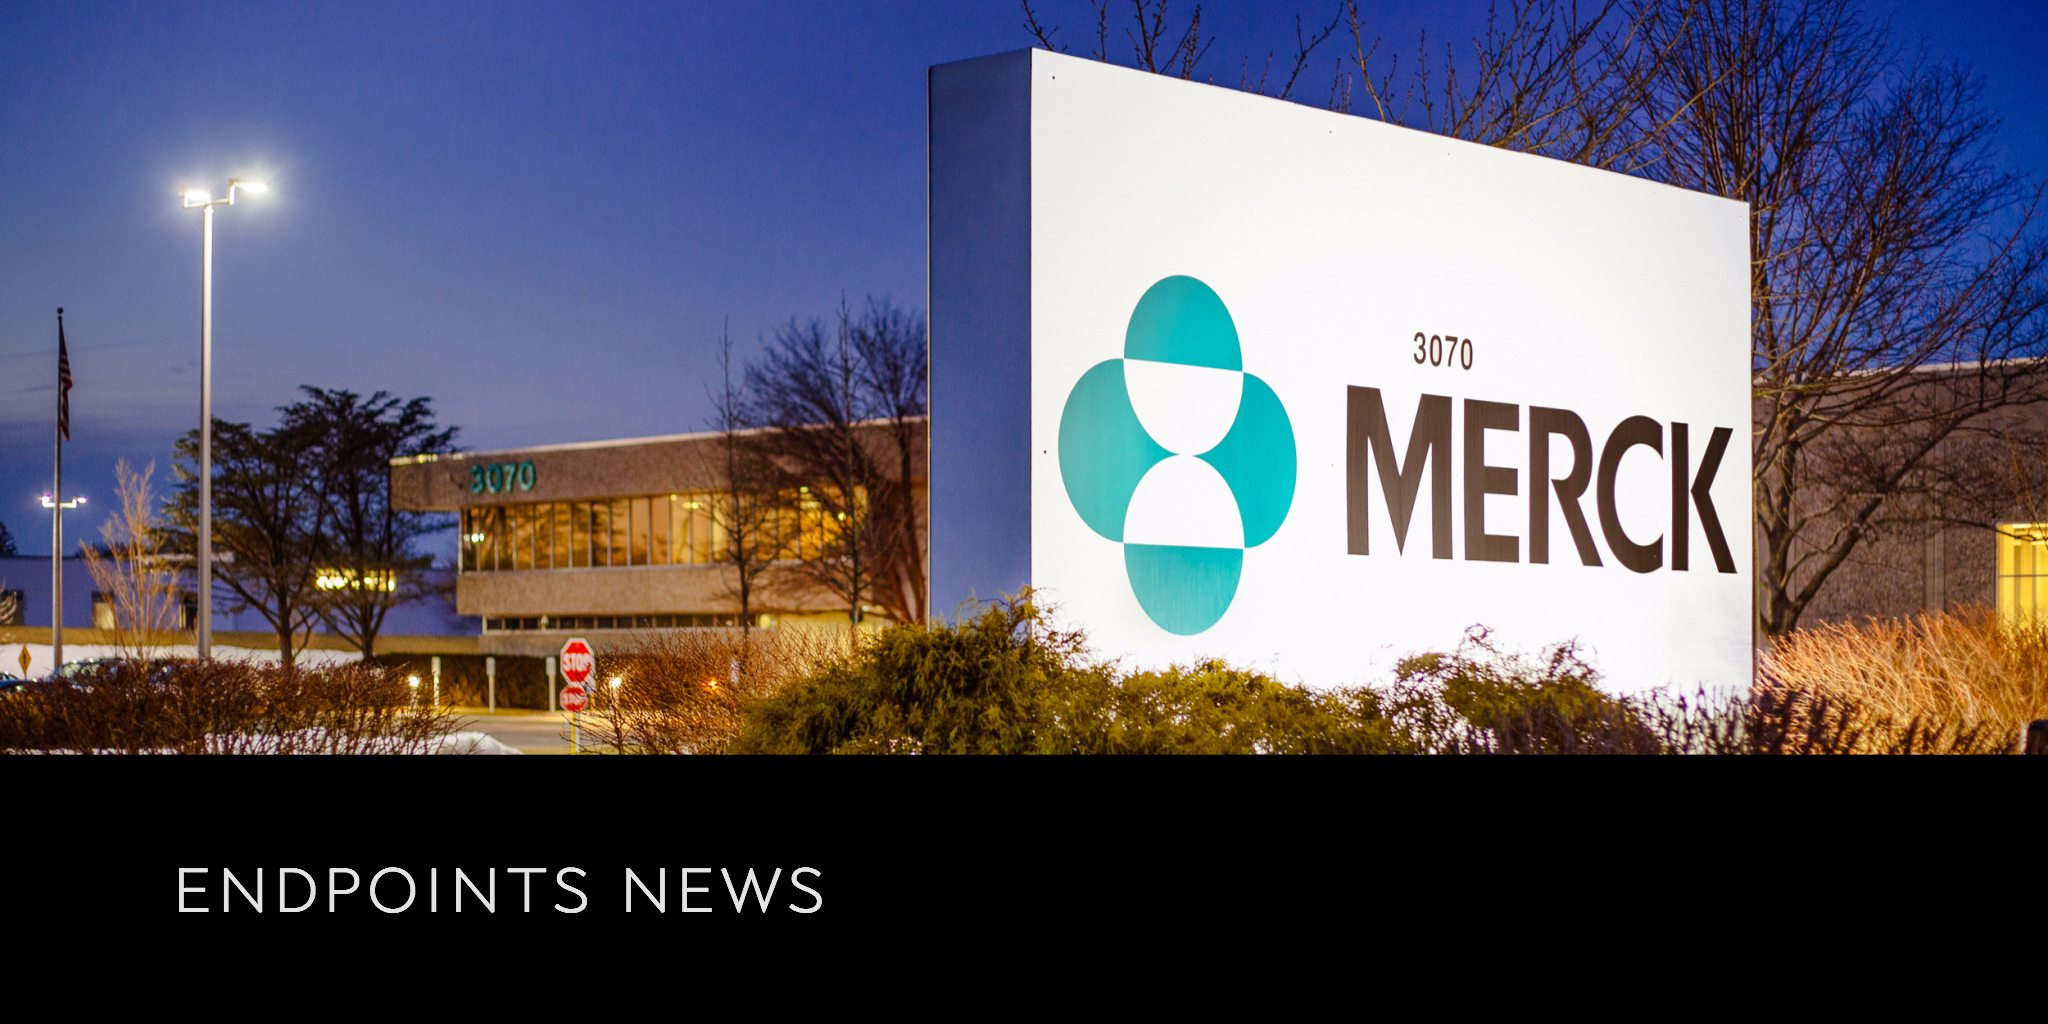 Merck boosted by FDA approval for Keytruda use with chemo